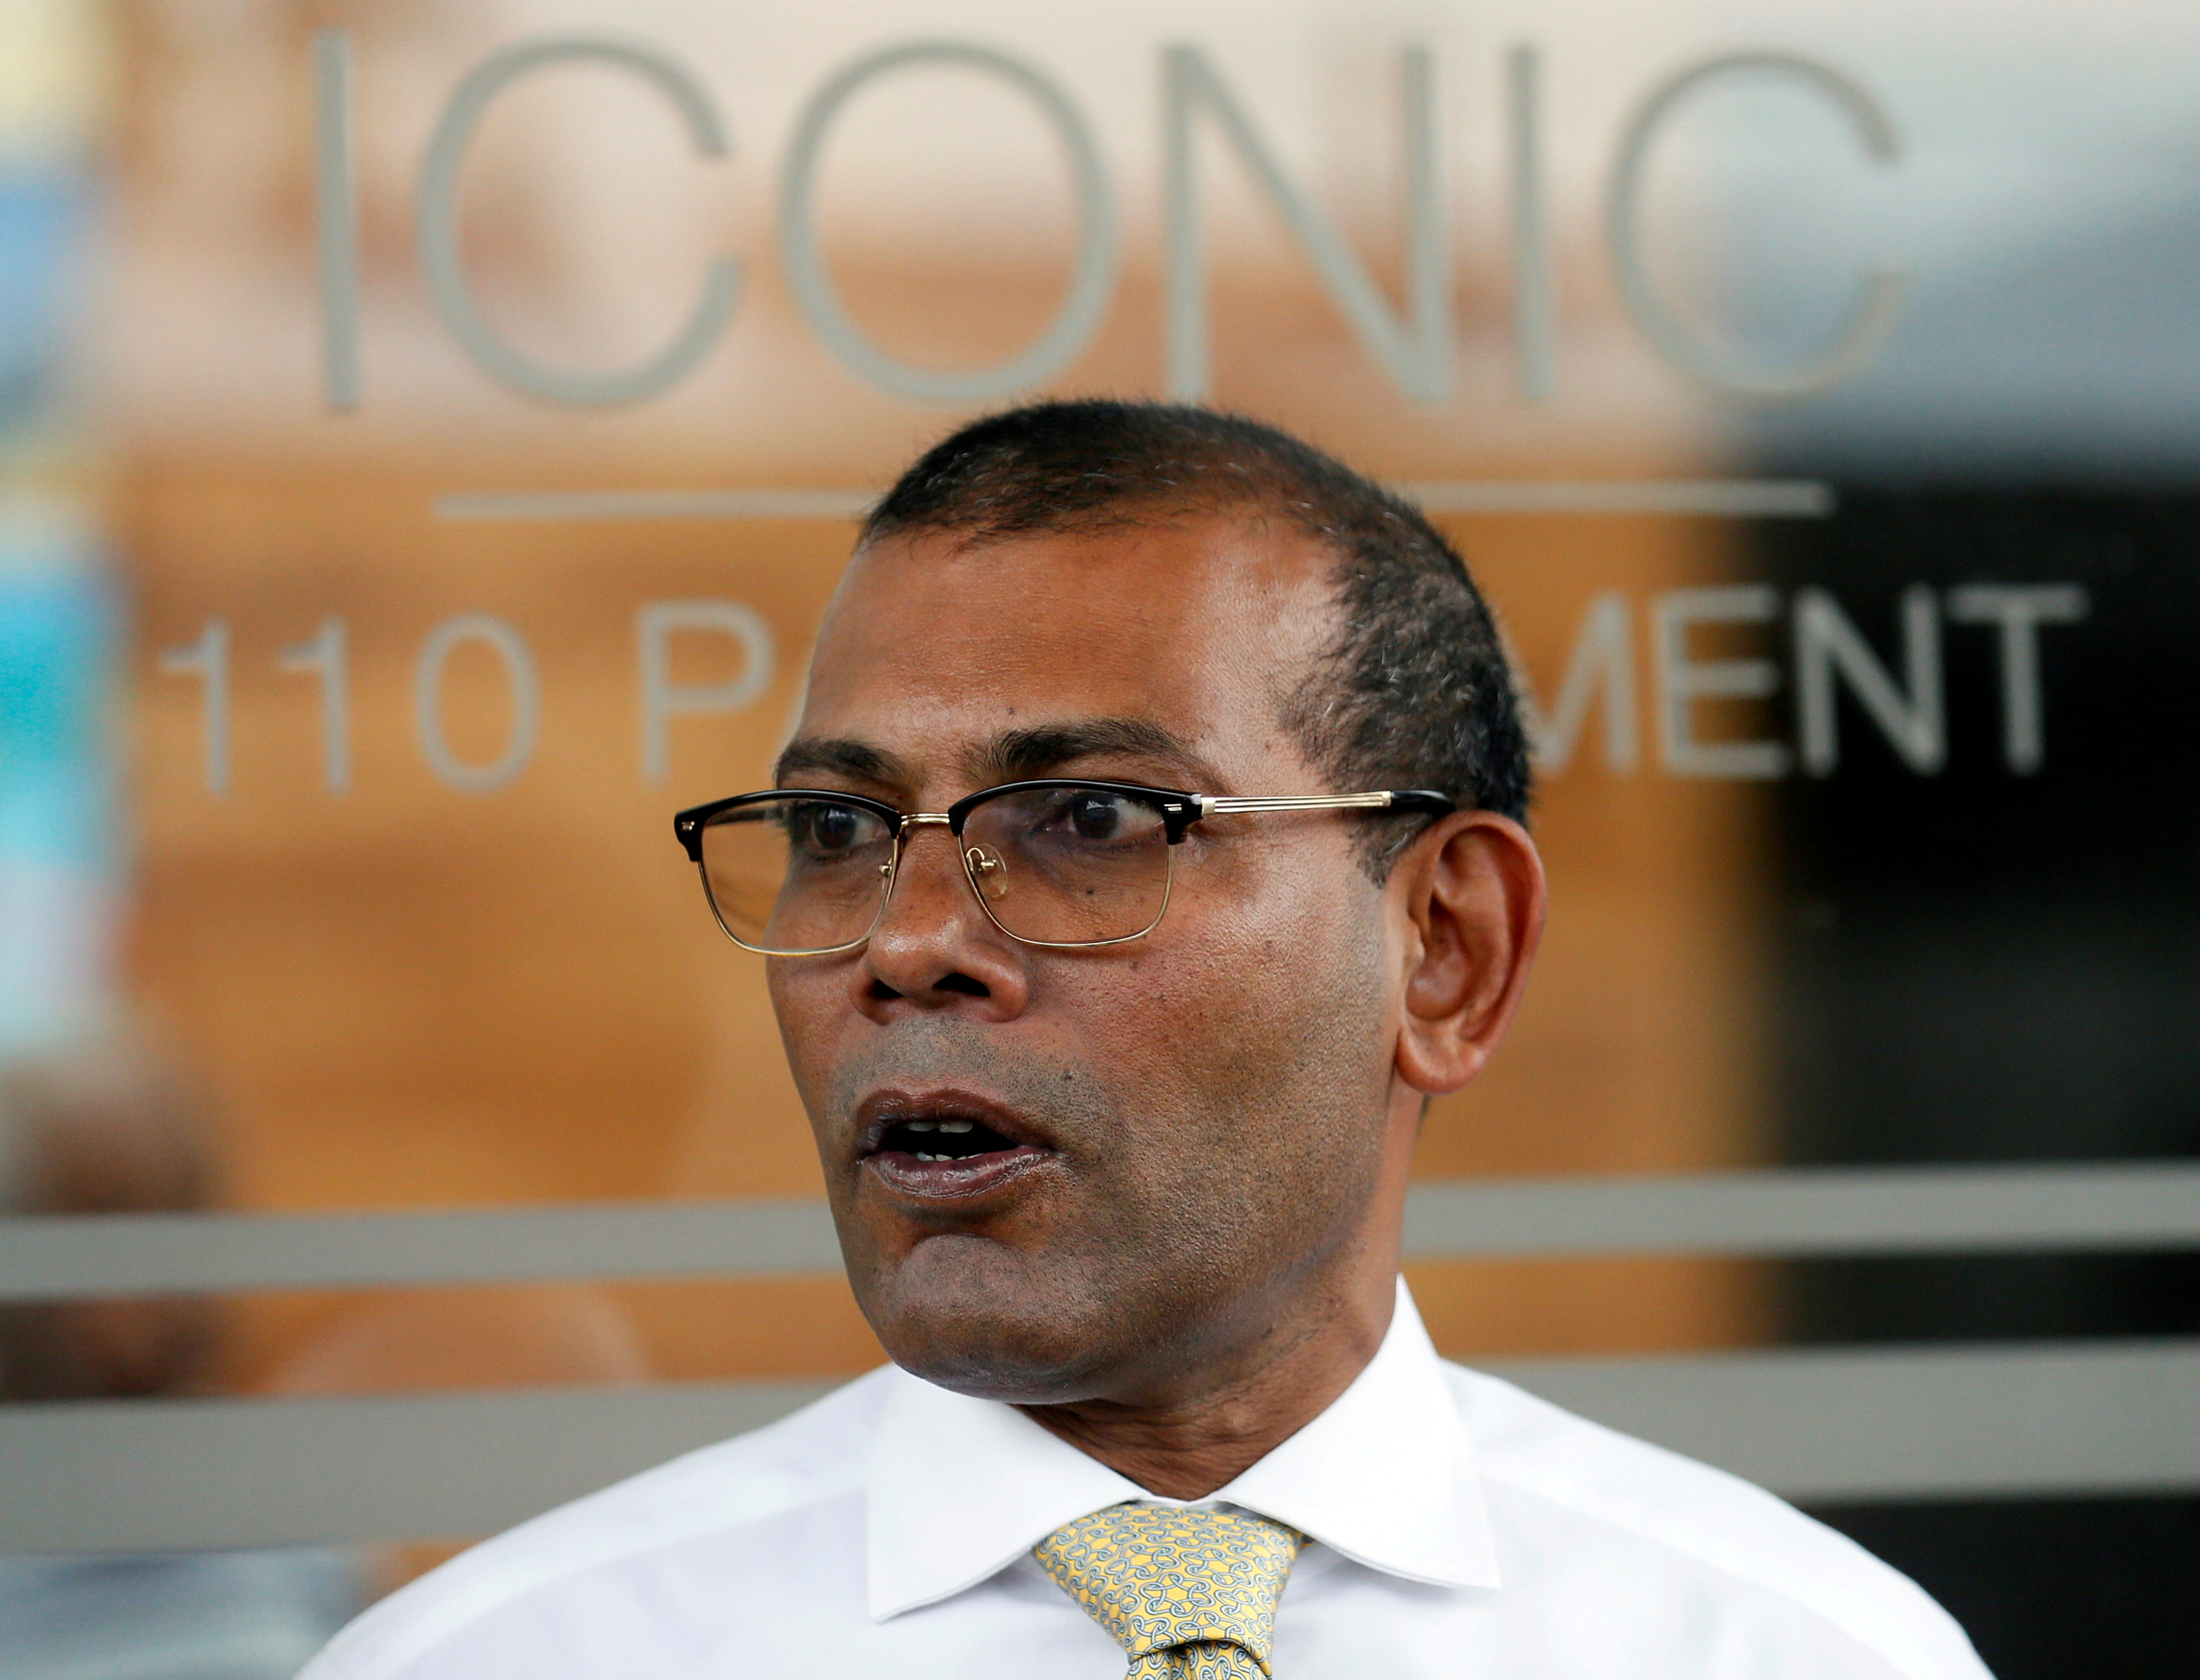 Maldives former President Mohamed Nasheed leaves a private apartment in Sri Lanka to return in his country, after living in exile between London and Colombo for over two and a half years, Colombo, Sri Lanka November 1, 2018. REUTERS/Dinuka Liyanawatte/File Photo